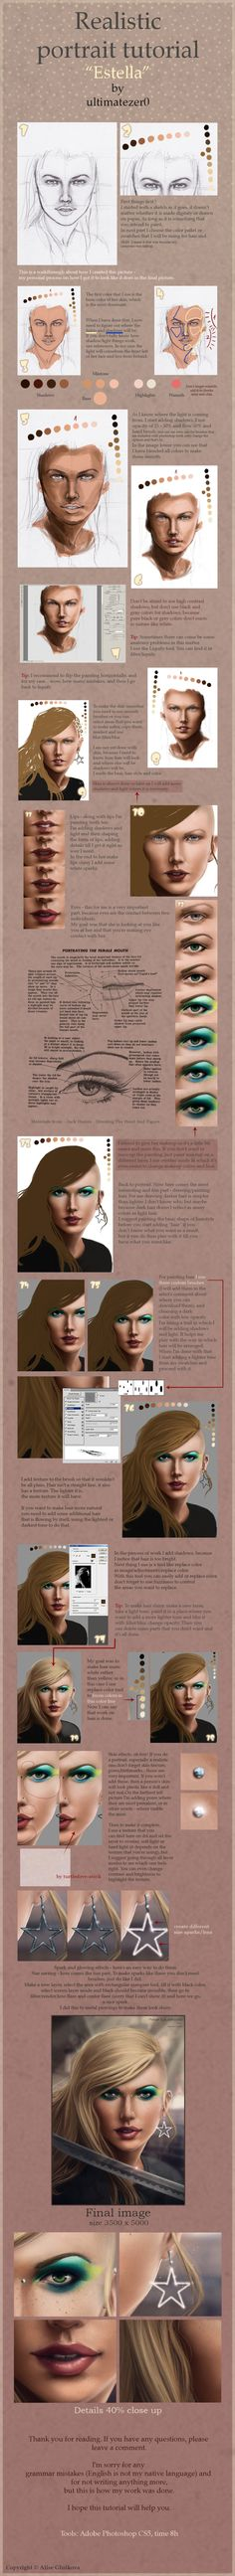 Realistic portrait tutorial by =totallyzer0 on deviantART ✤ || CHARACTER DESIGN REFERENCES | キャラクターデザイン | çizgi film • Find more at https://www.facebook.com/CharacterDesignReferences & http://www.pinterest.com/characterdesigh if you're looking for: #color #theory #contrast #animation #how #to #draw #paint #drawing #tutorial #lesson #balance #sketch #colors #painting #process #line #art #comics #tips #cartoon || ✤